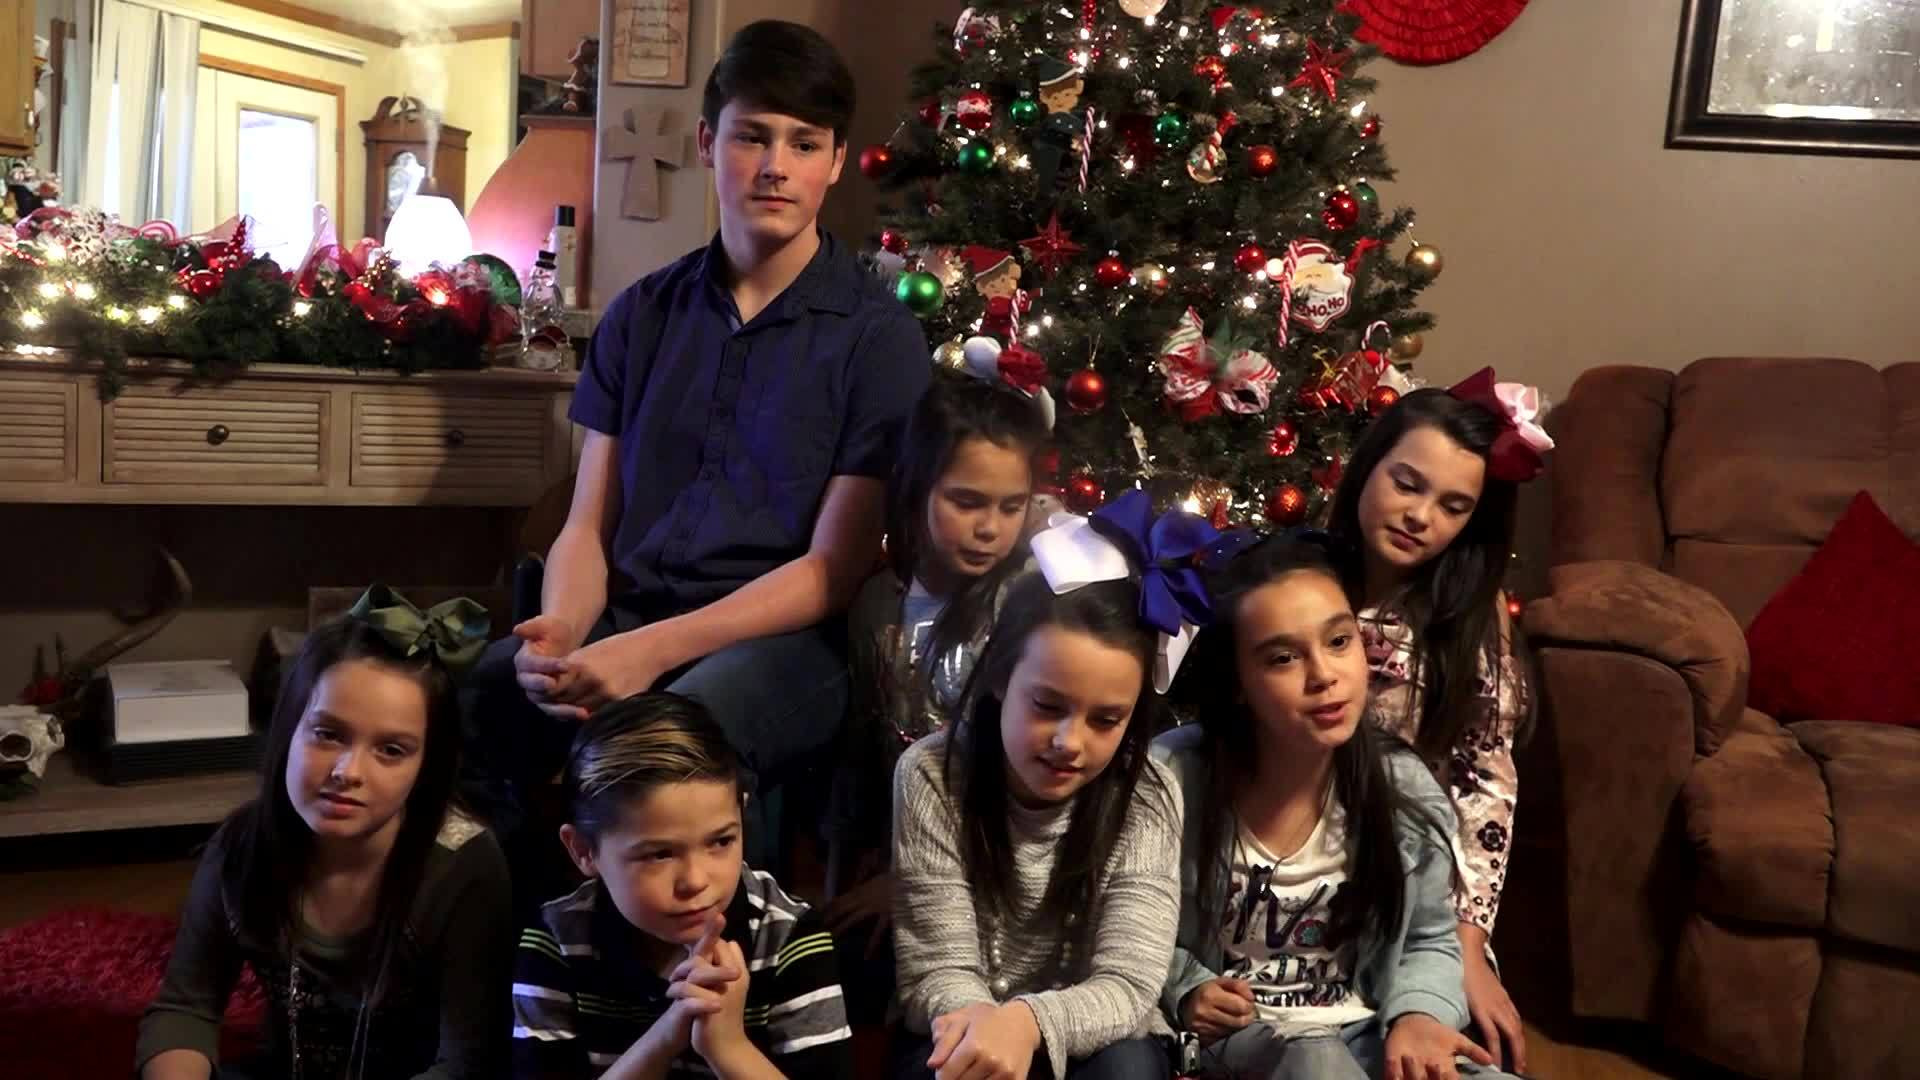 VIDEO: Couple adopts 7 siblings out of foster care — just in time for Christmas